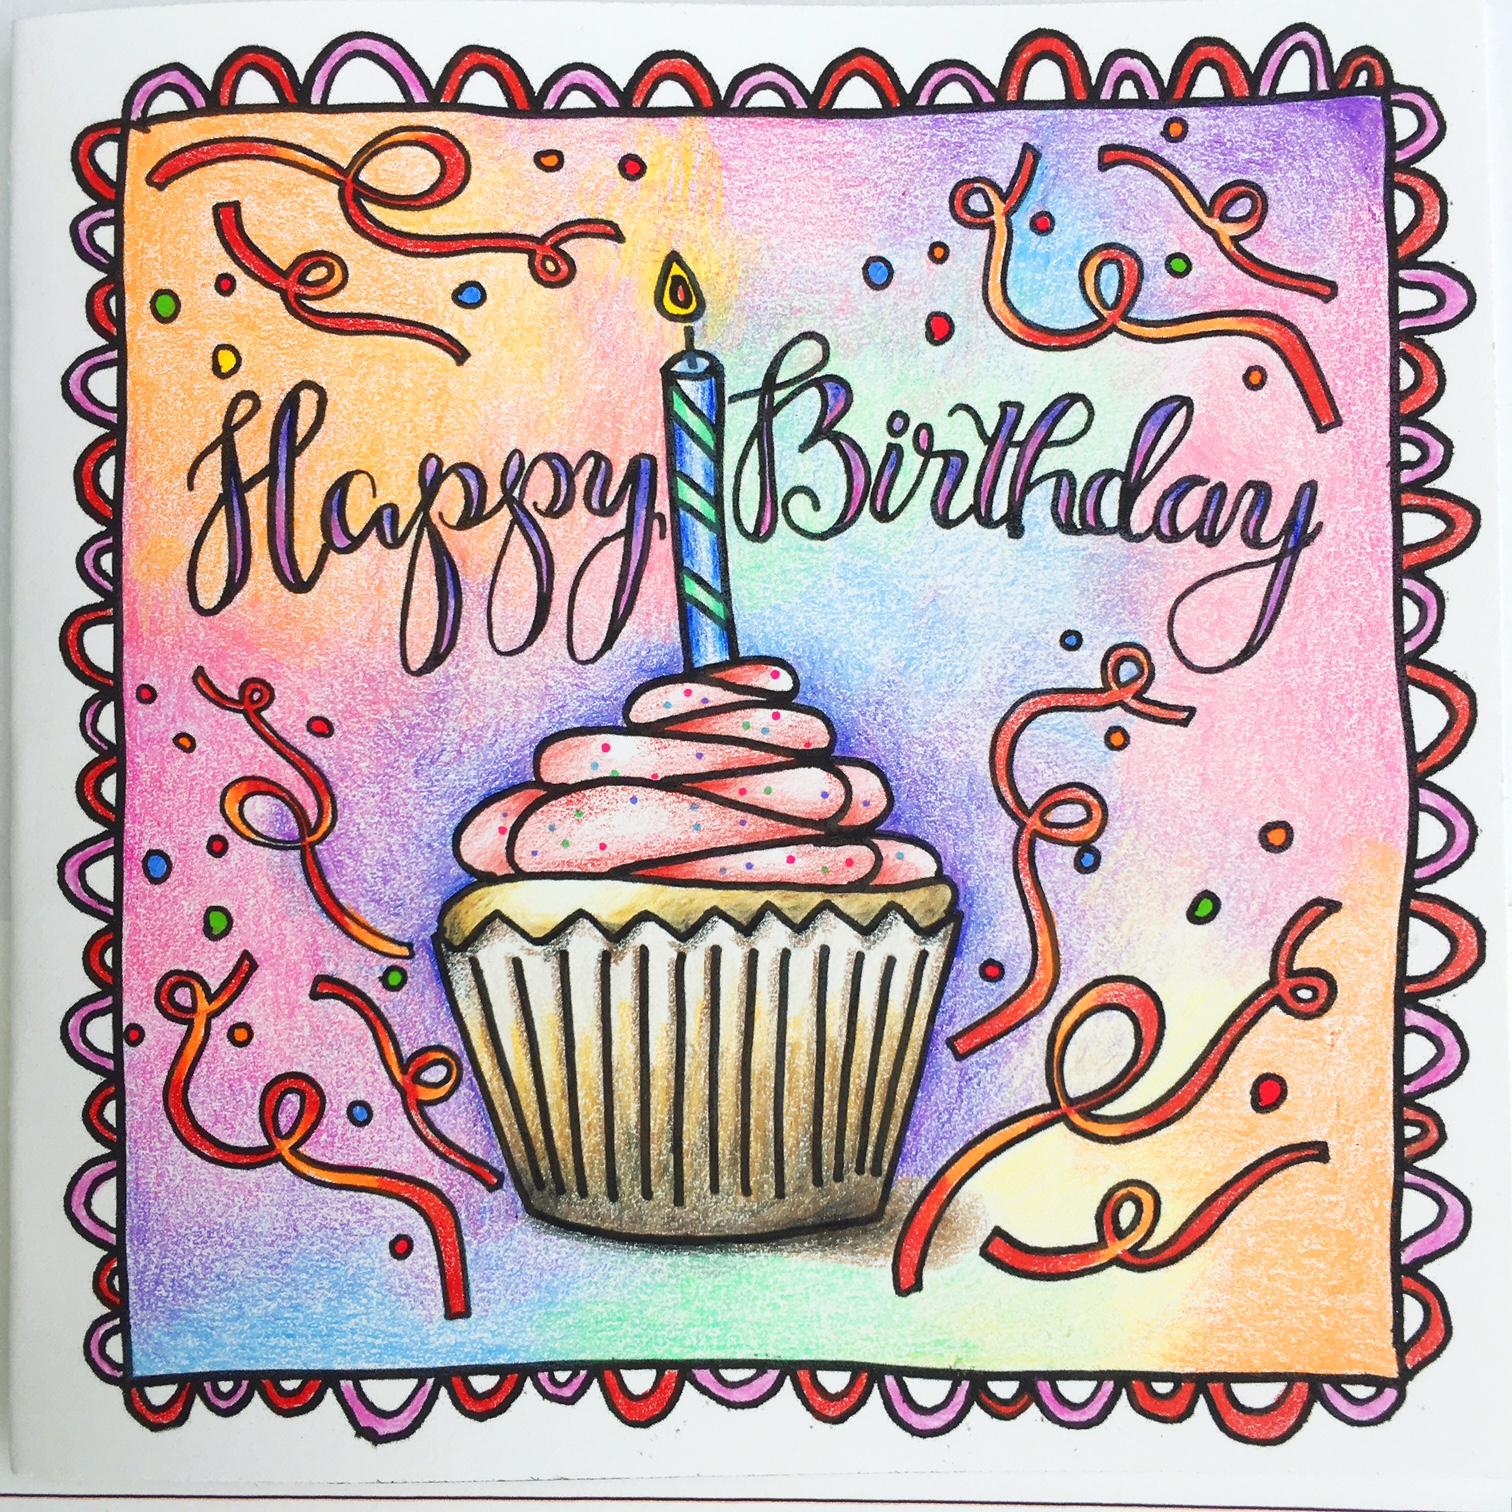 Inspirational free birthday cards download images eccleshallfc bookmarktalkfo Gallery